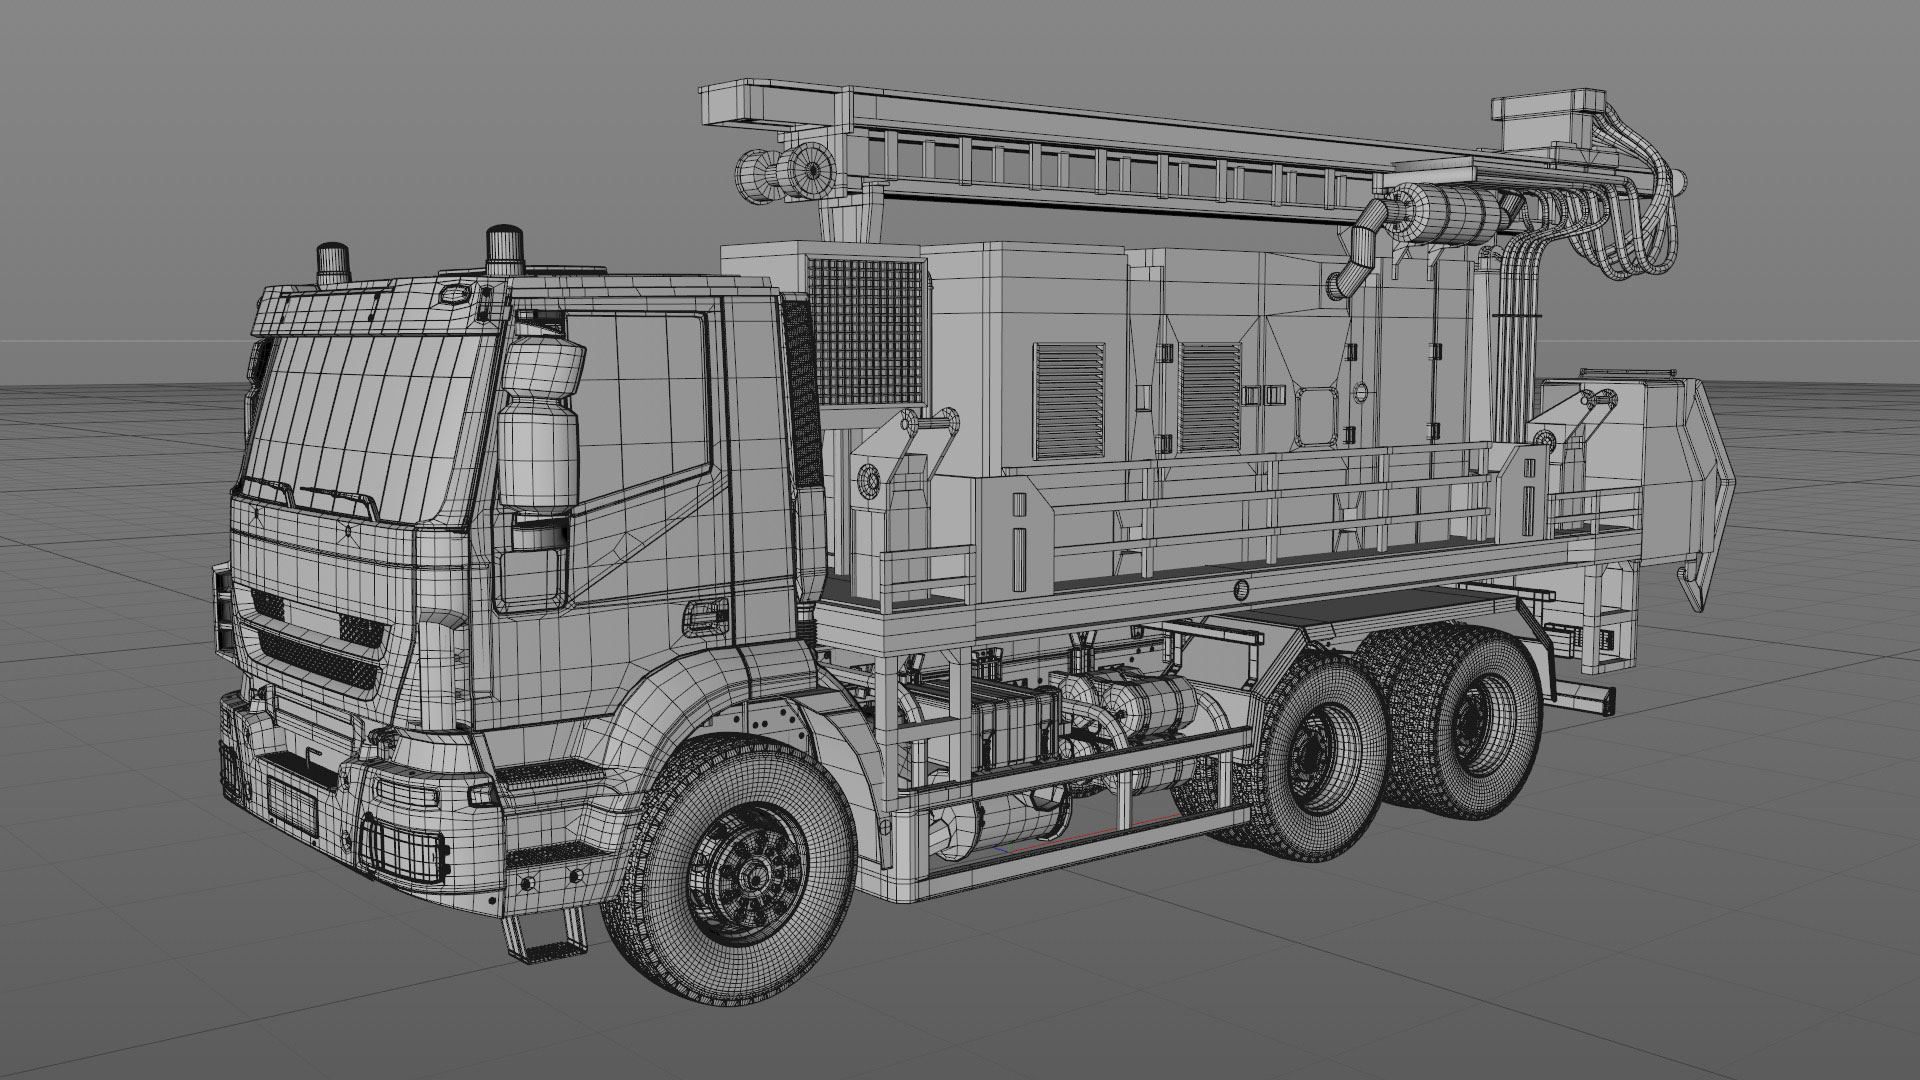 Projects_CharityWater_process_Drilling_Rig_model_01_C4Dviewport